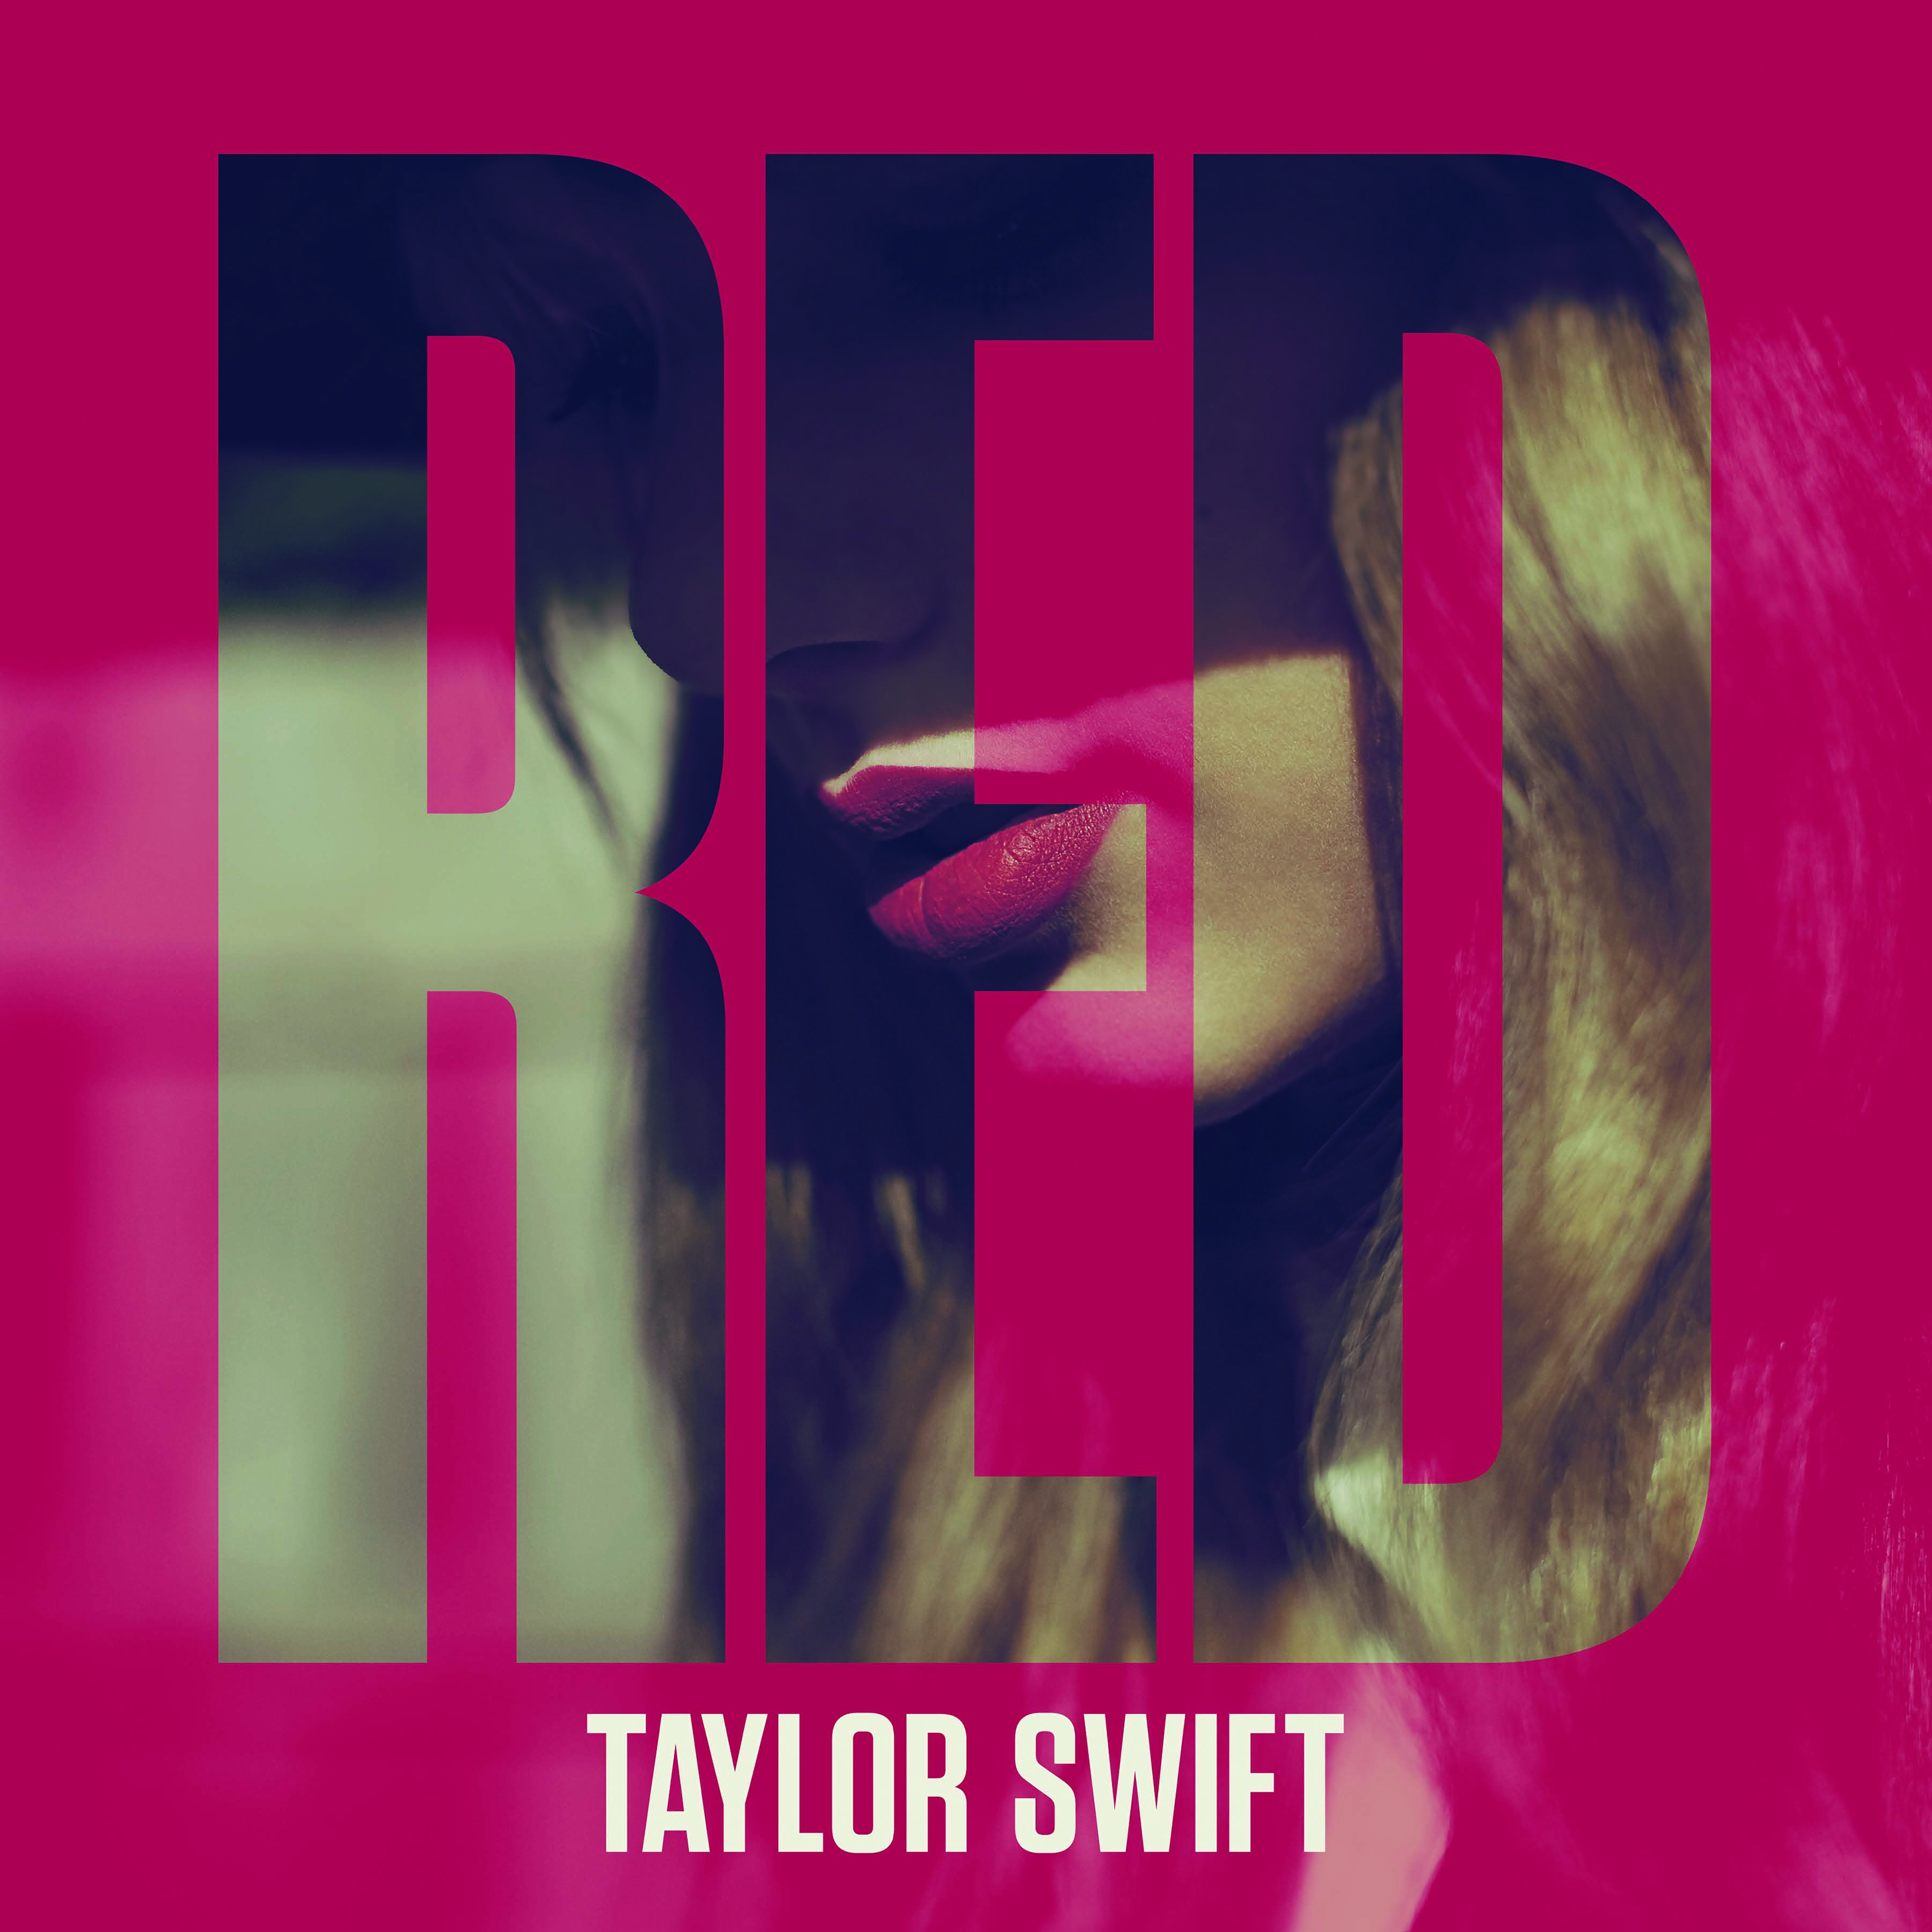 Deluxe us – taylor swift official store.